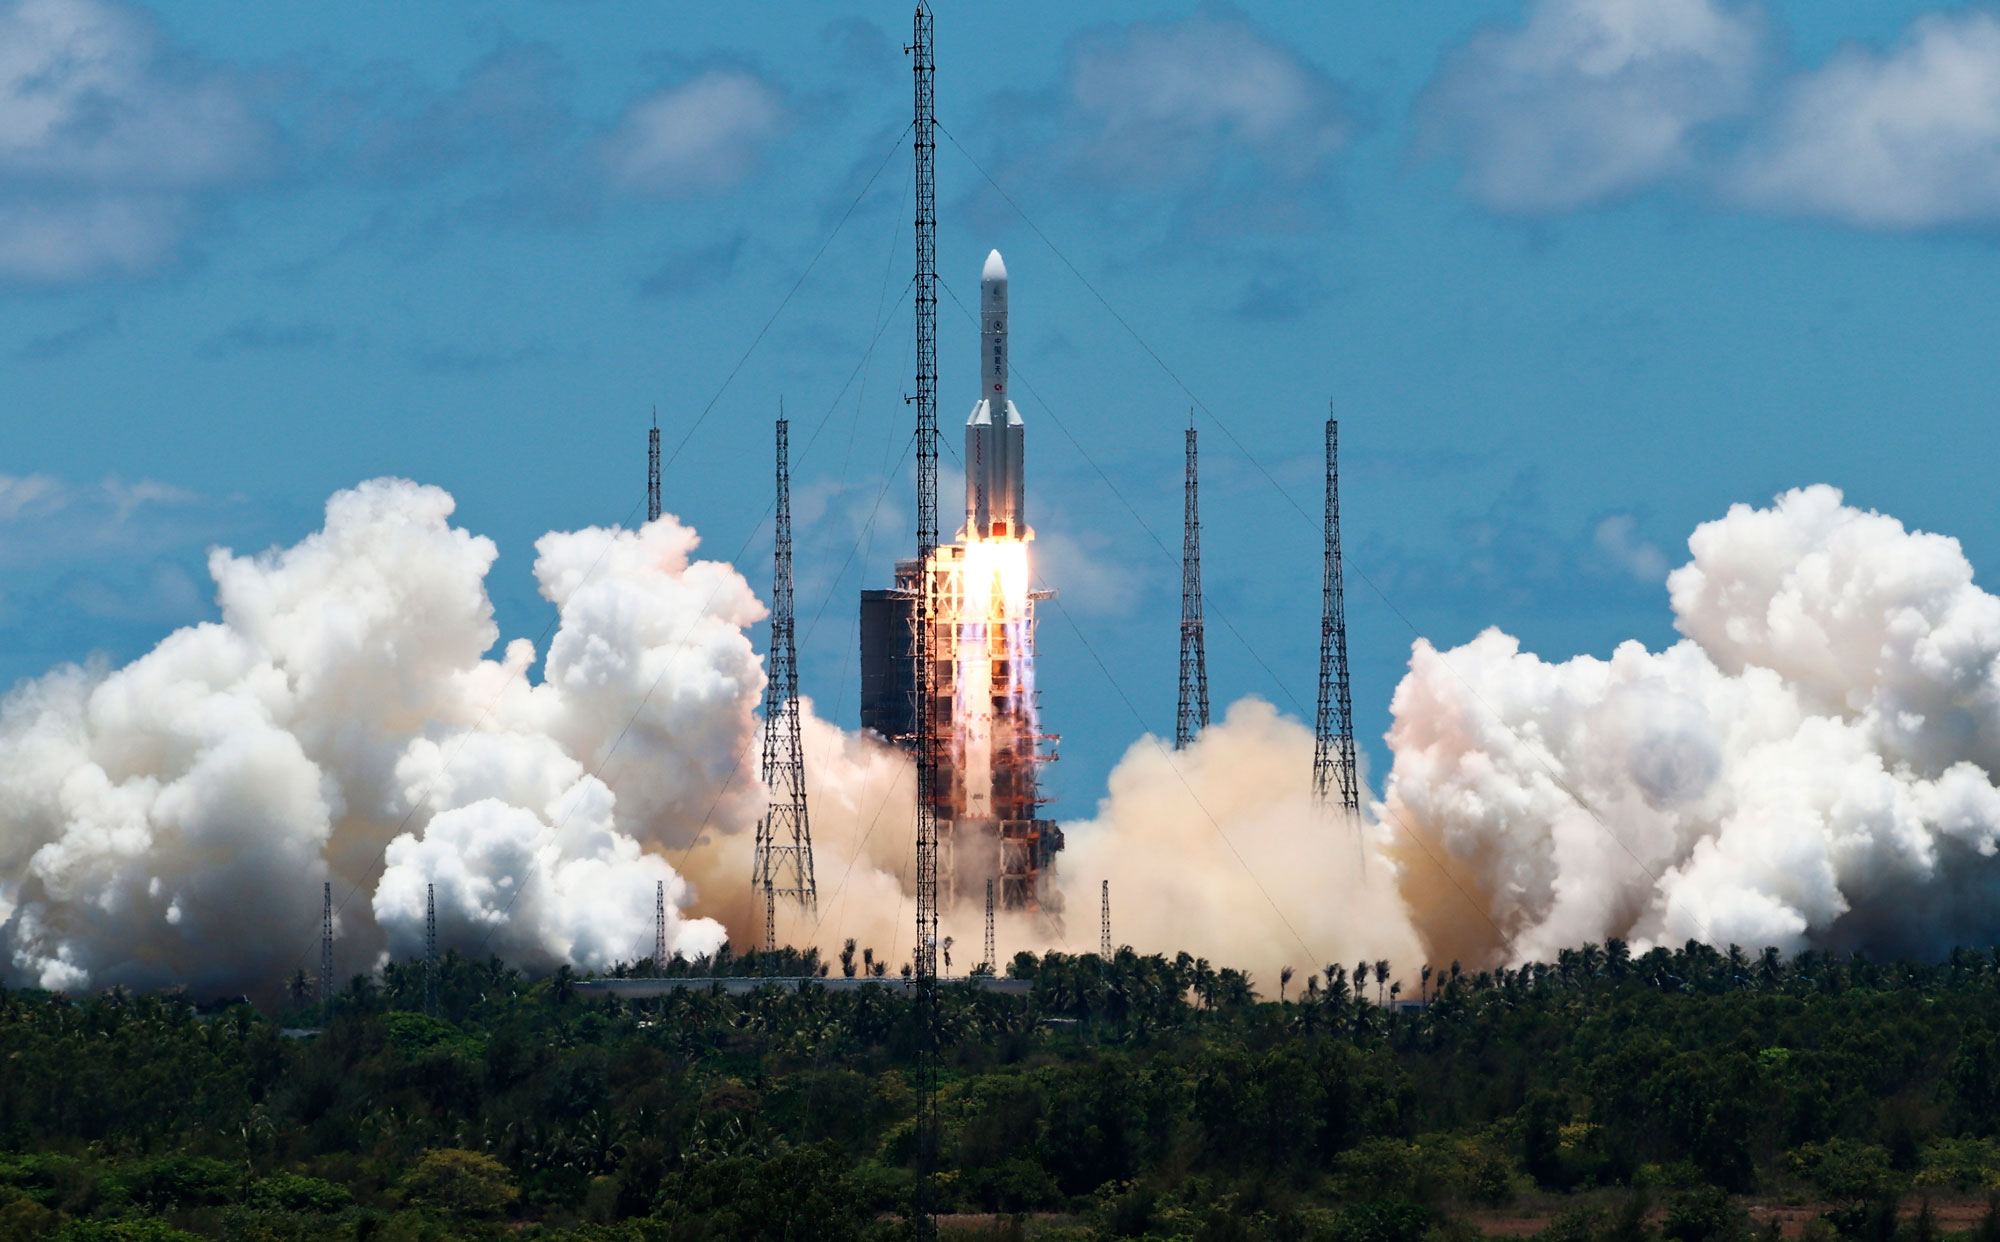 China's rocket takes off for Mars